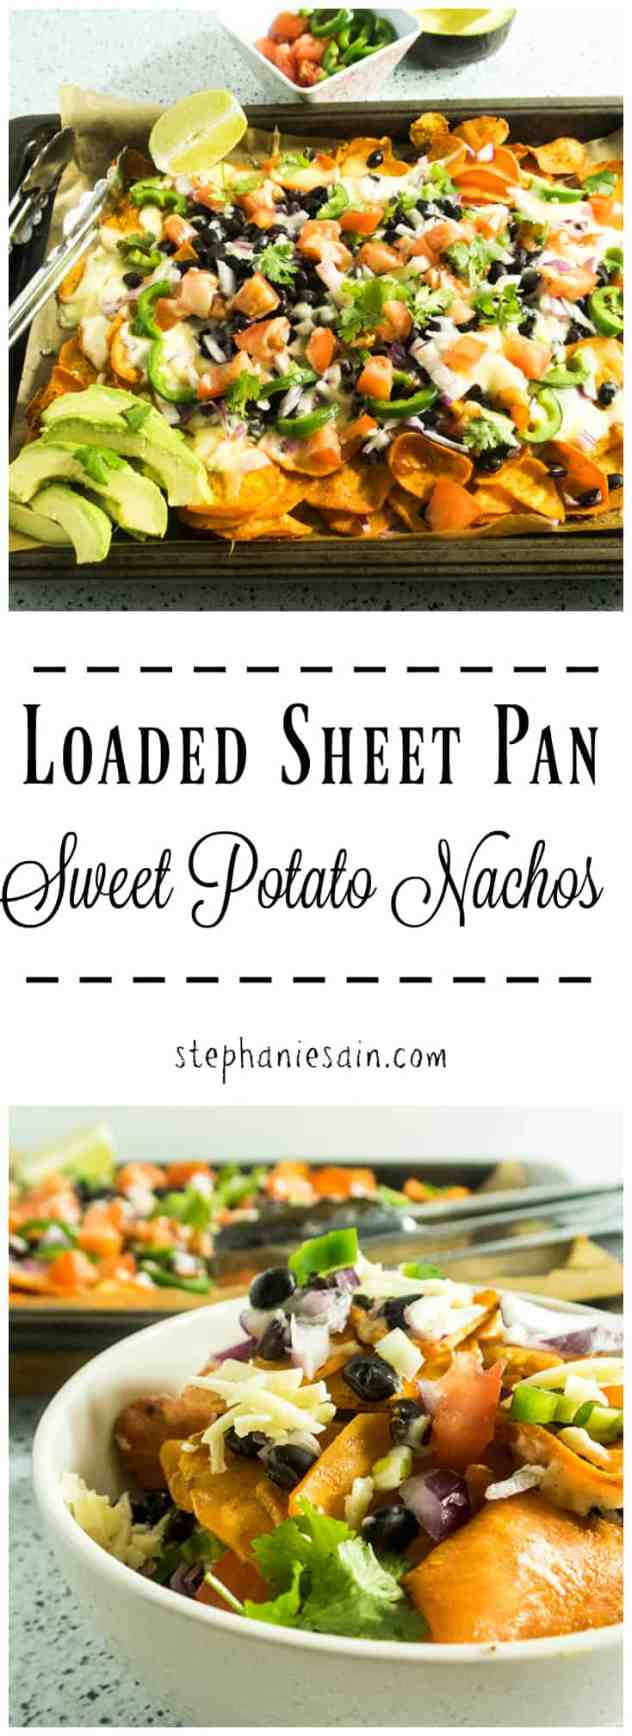 Loaded Sheet Pan Sweet Potato Nachos are a tasty, healthier twist on nachos. Topped with a creamy sauce and all your favorite nacho toppings. Vegetarian, Gluten Free & Vegan option.